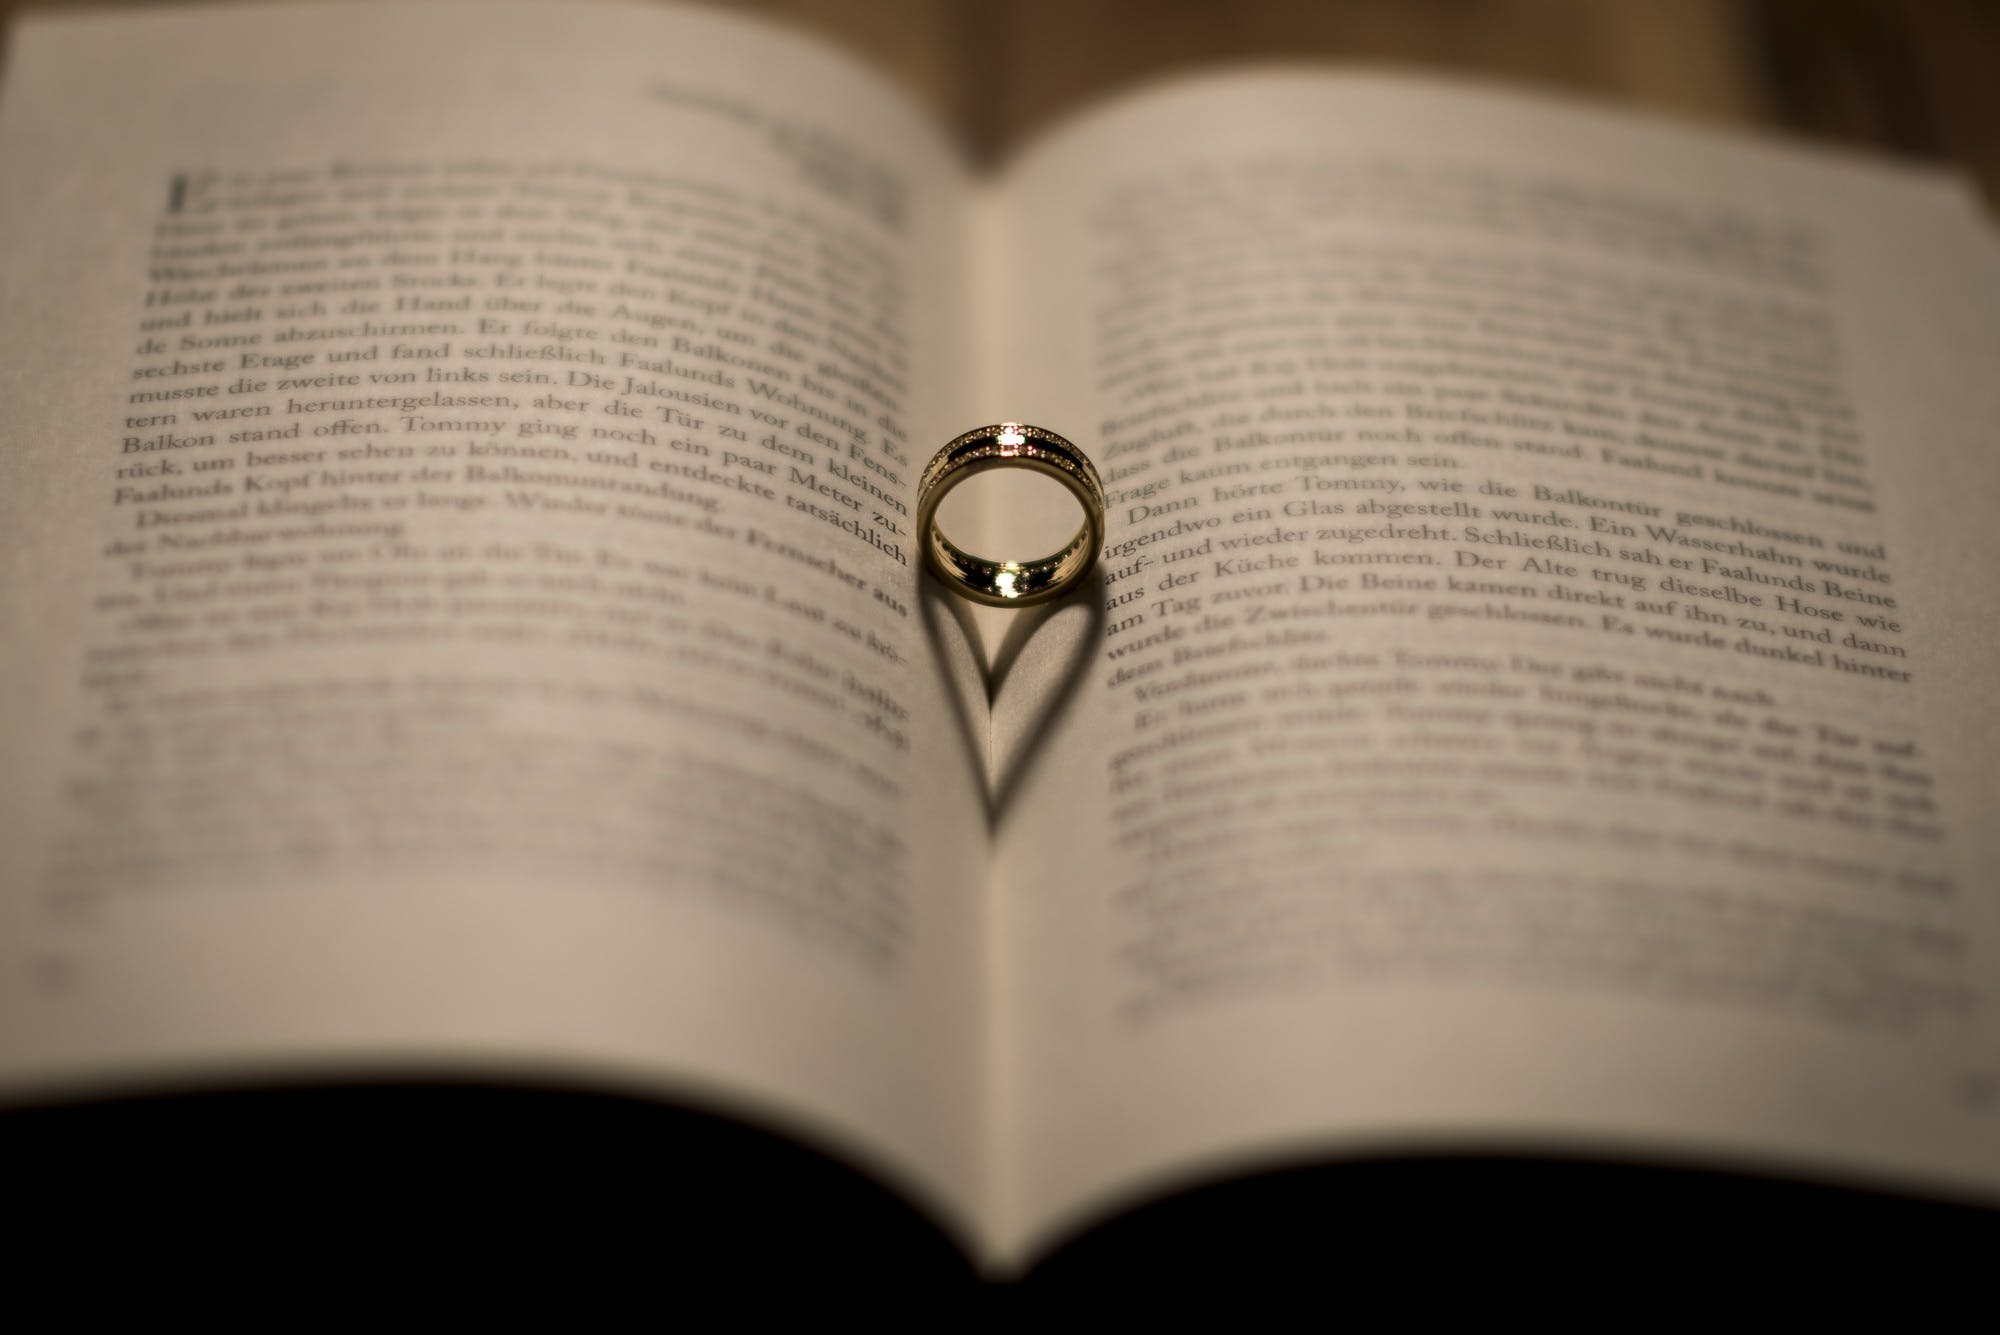 Selective Focus Photography of Silver-colored Ring on Opened Textbook